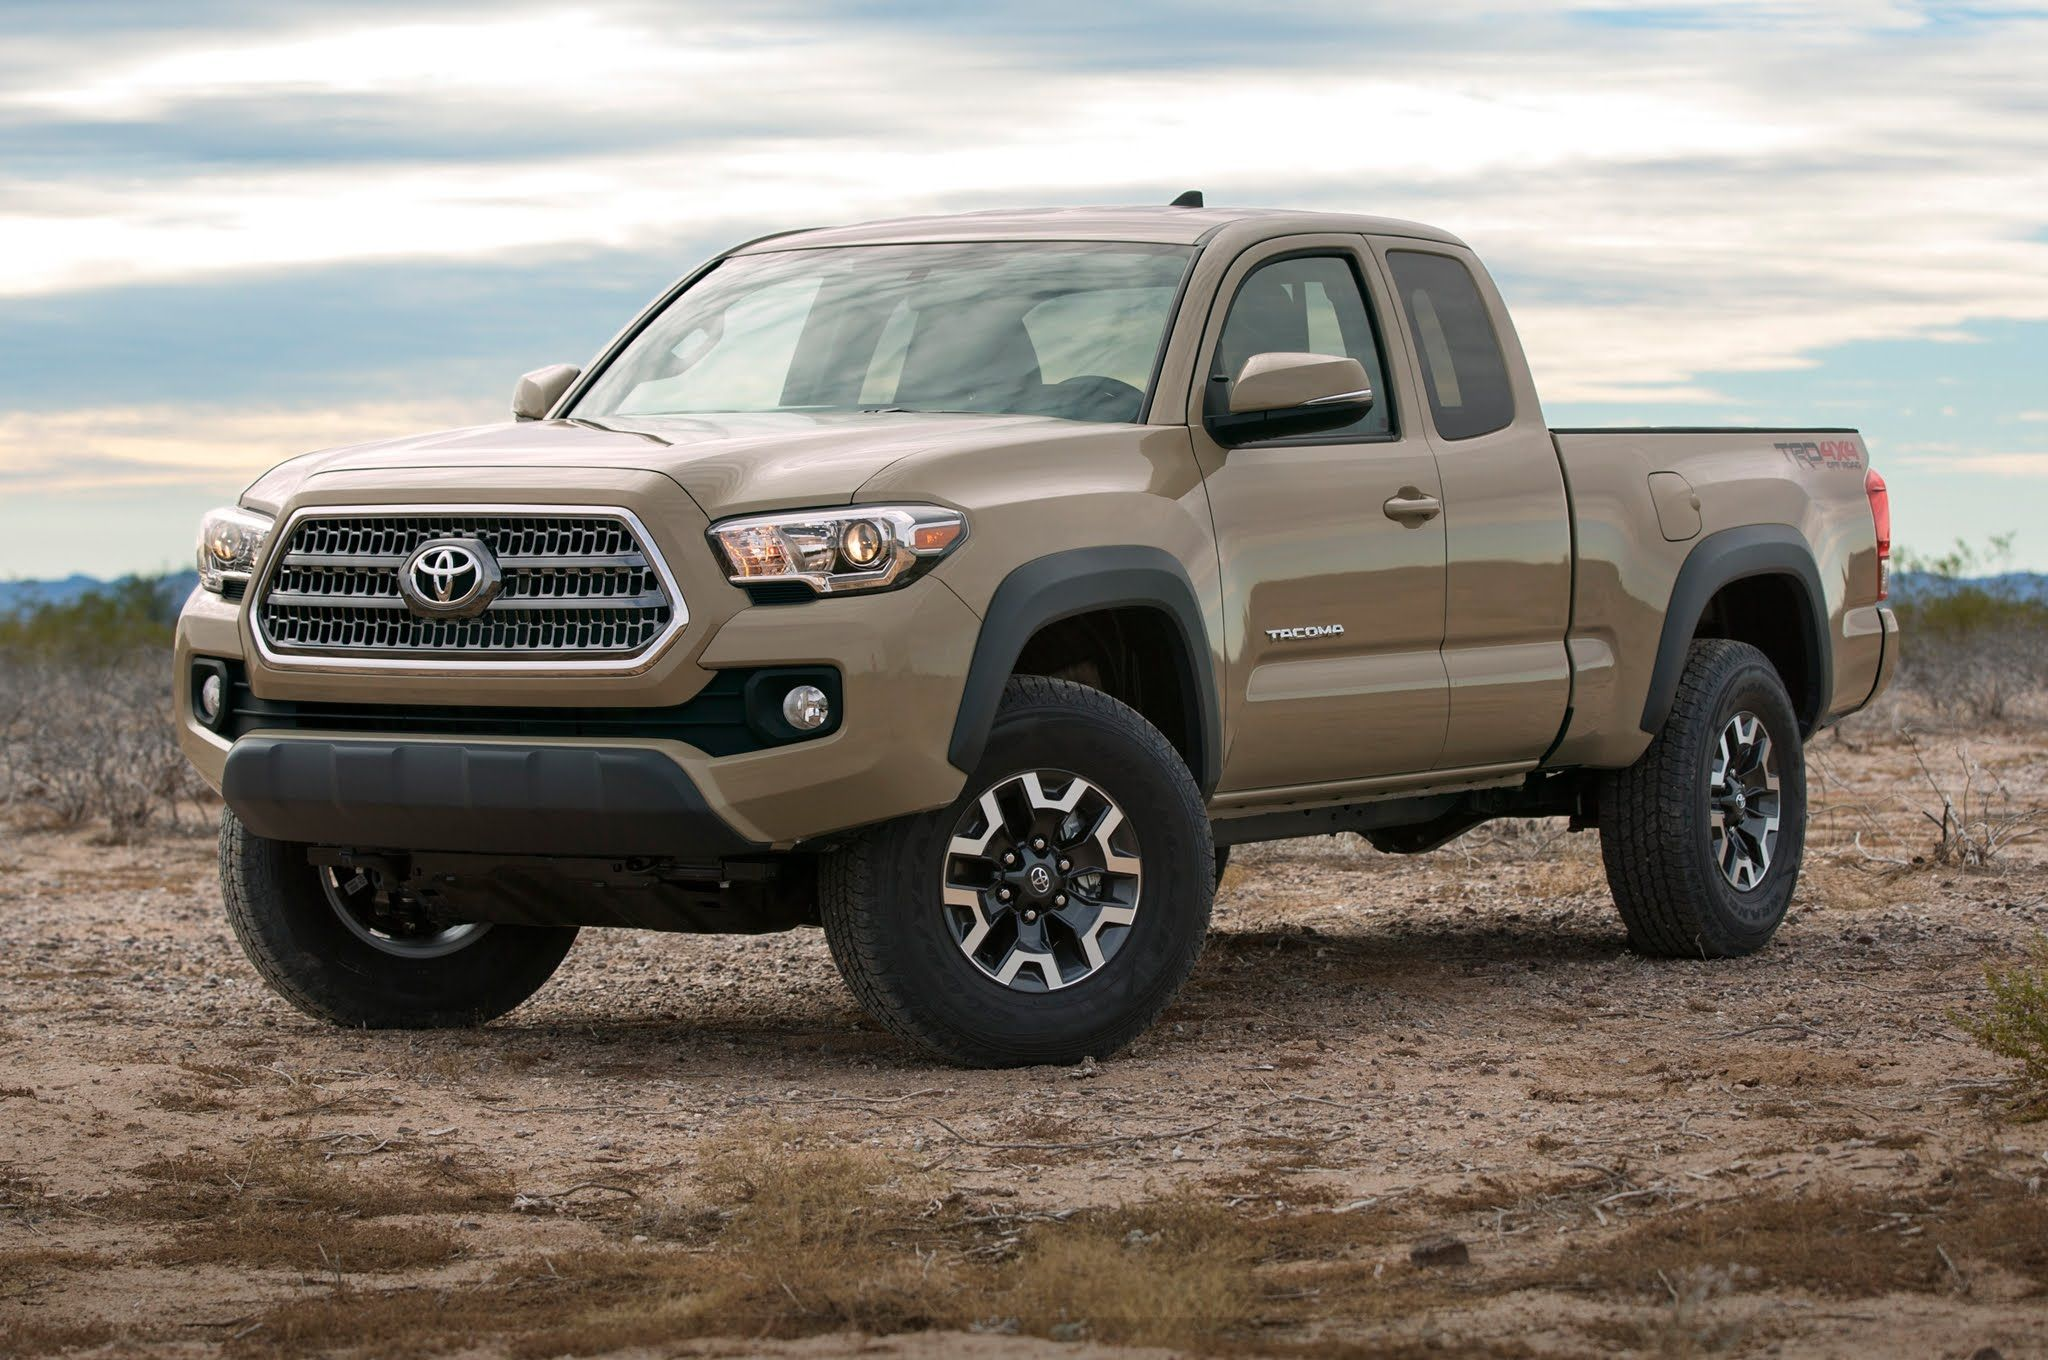 2017 toyota tacoma trd pro exterior interior off road test drivr deep car pinterest. Black Bedroom Furniture Sets. Home Design Ideas